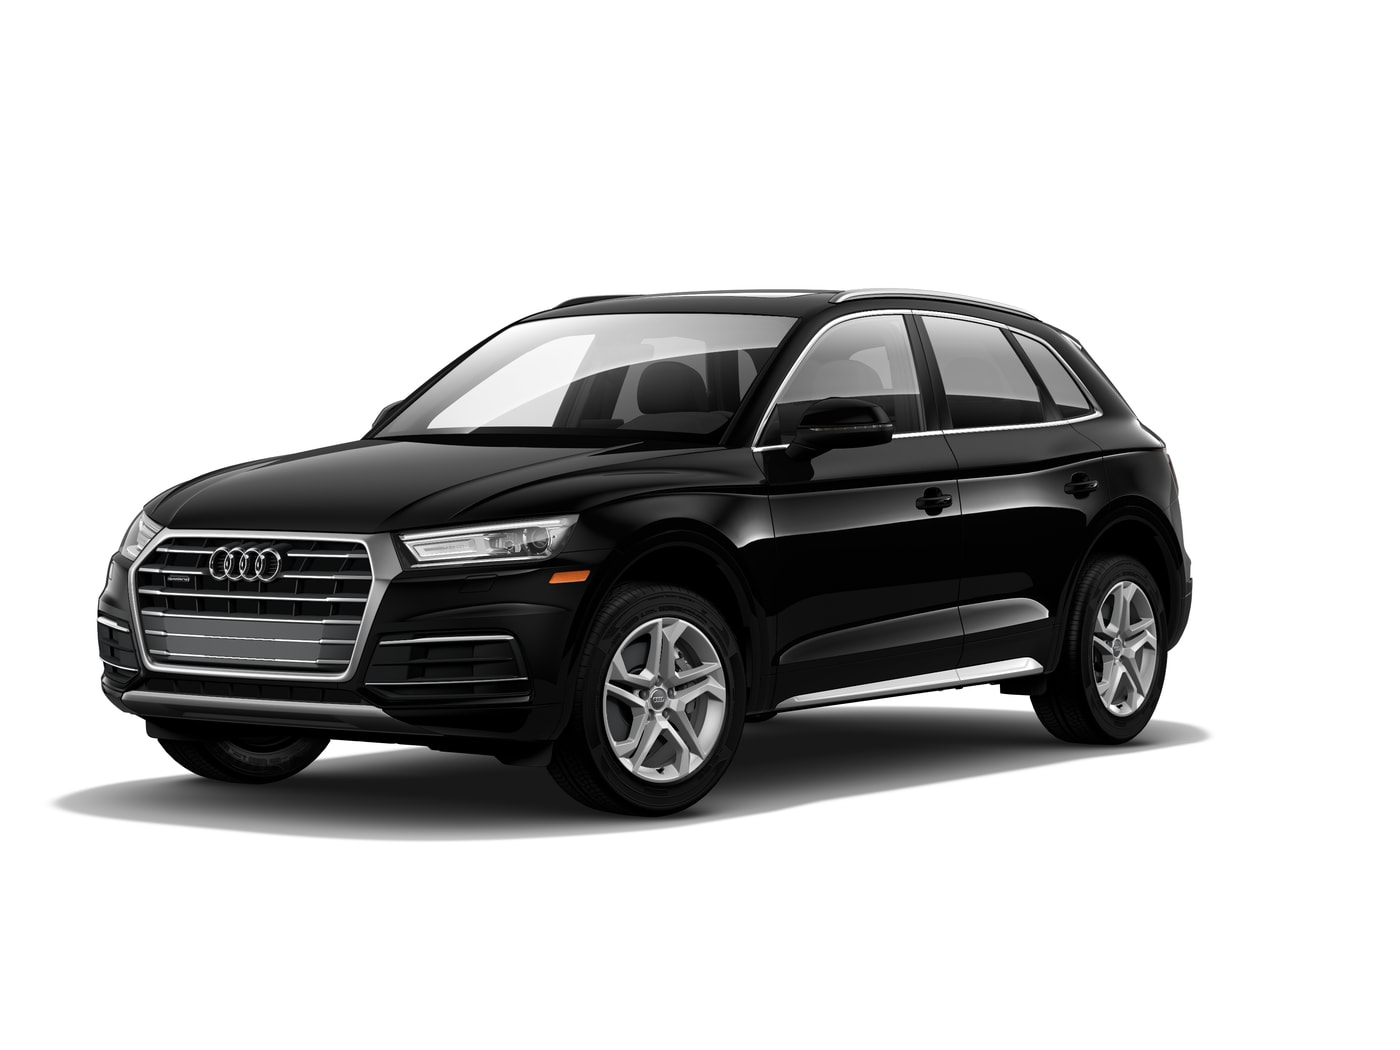 New 2019 Audi Q5 2.0T Premium SUV near Atlanta, GA